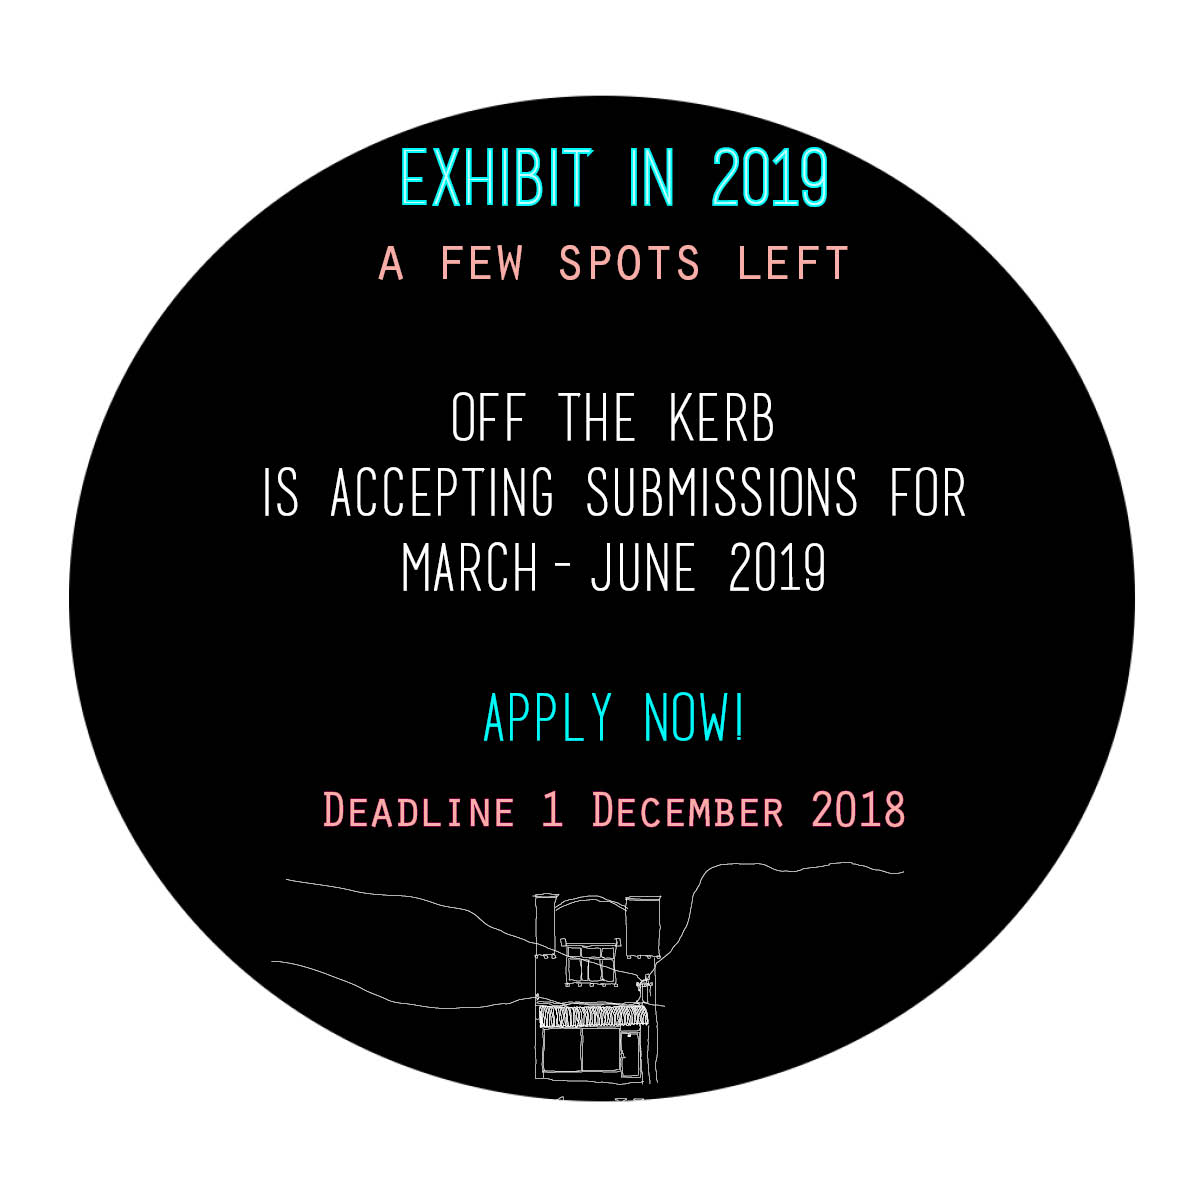 apply to exhibit